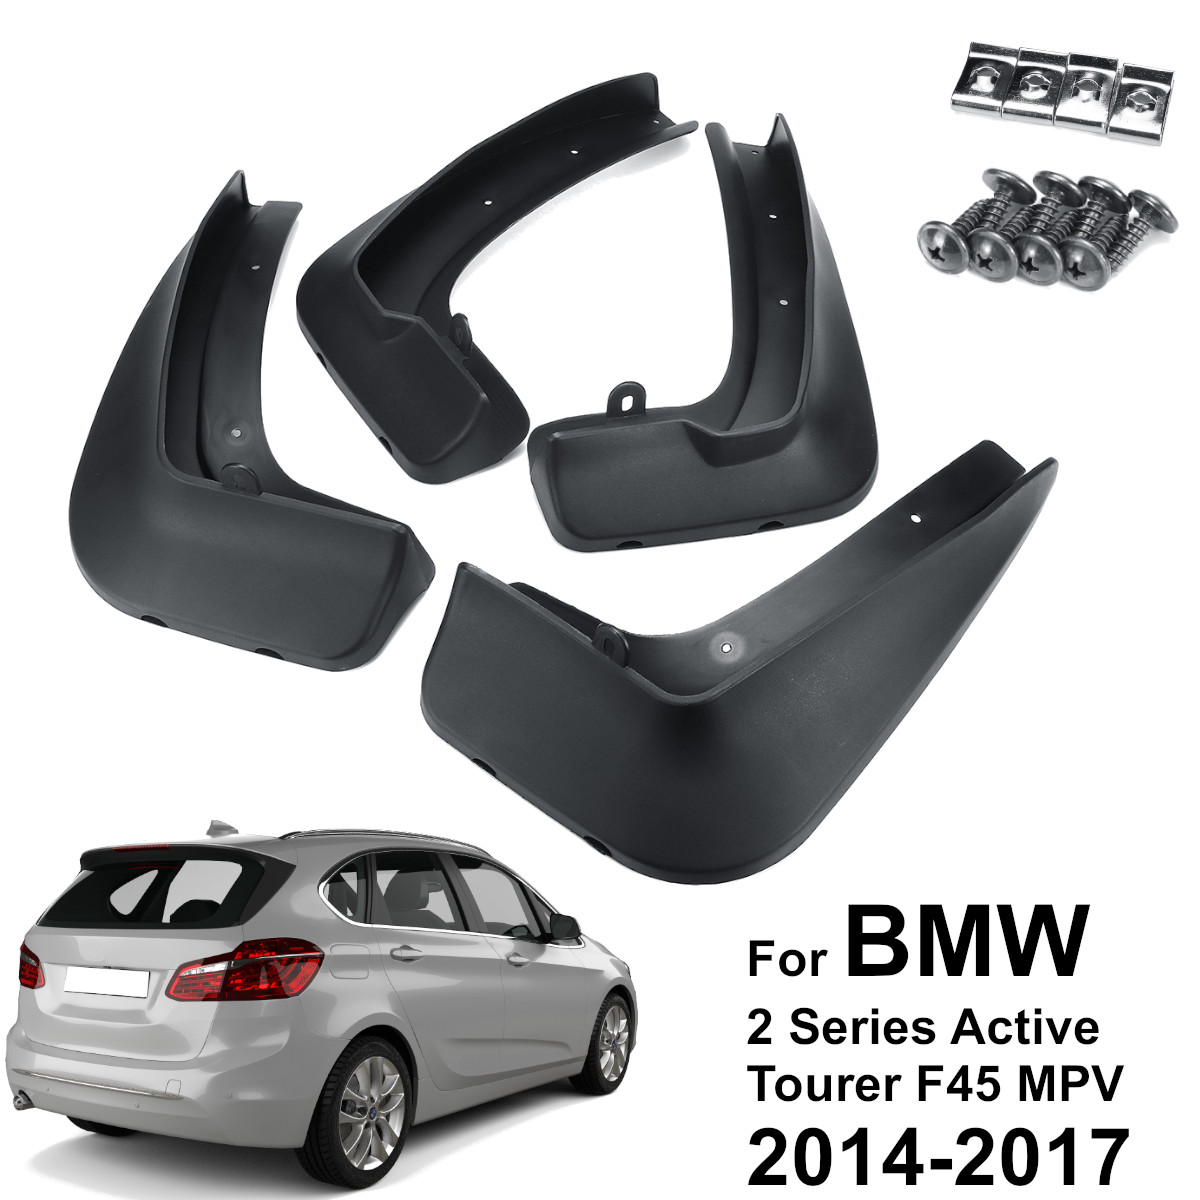 4pcs Car Front Rear Fender Flares Splash Guards Auto Mud Flaps for BMW 2 SERIES F45